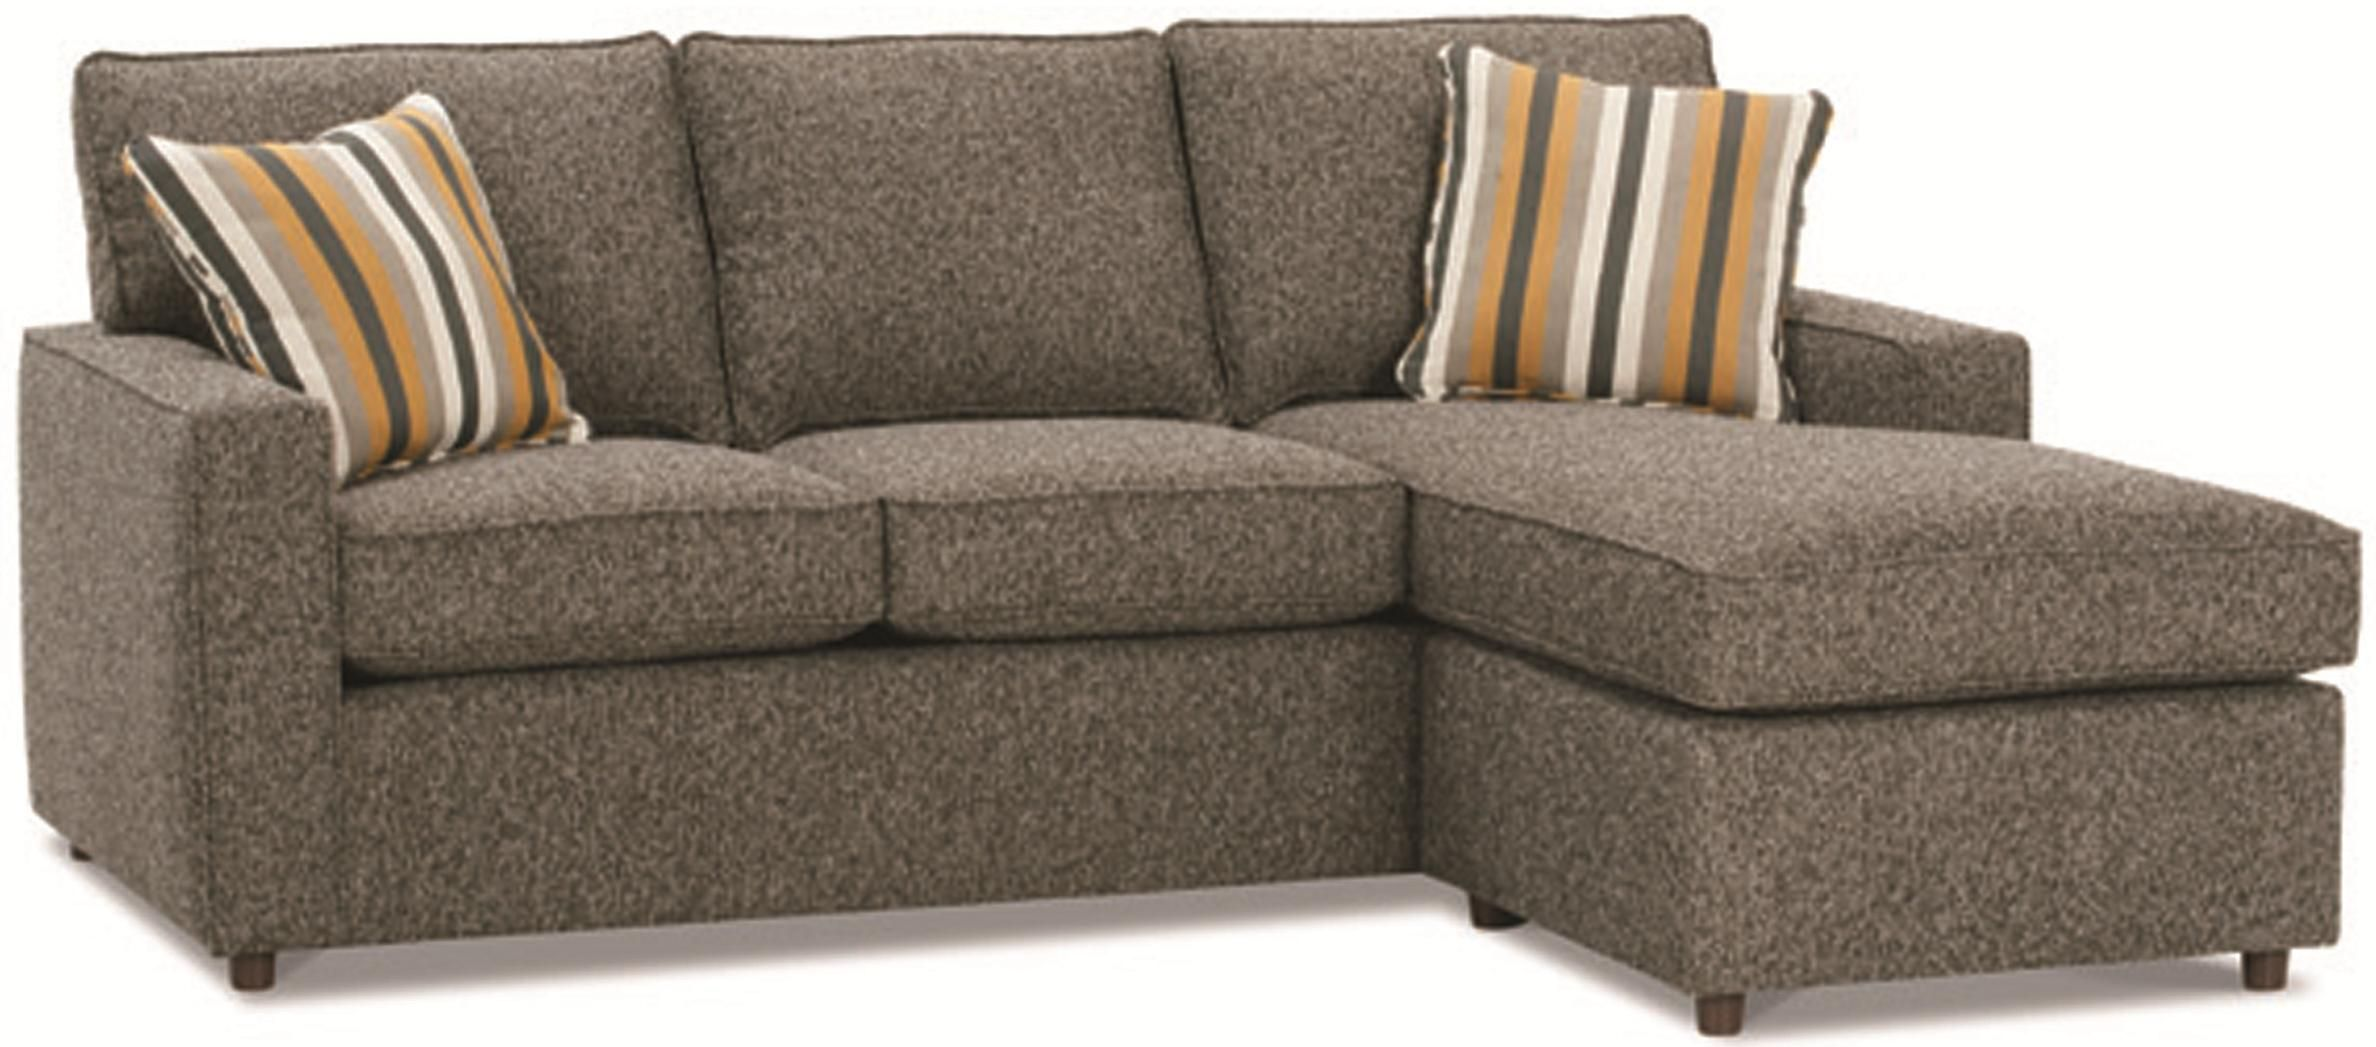 Luxe 2 Seat Sofa Slipcover Removal Queens Ny Furniture World Sofas Ivory Canvas Three